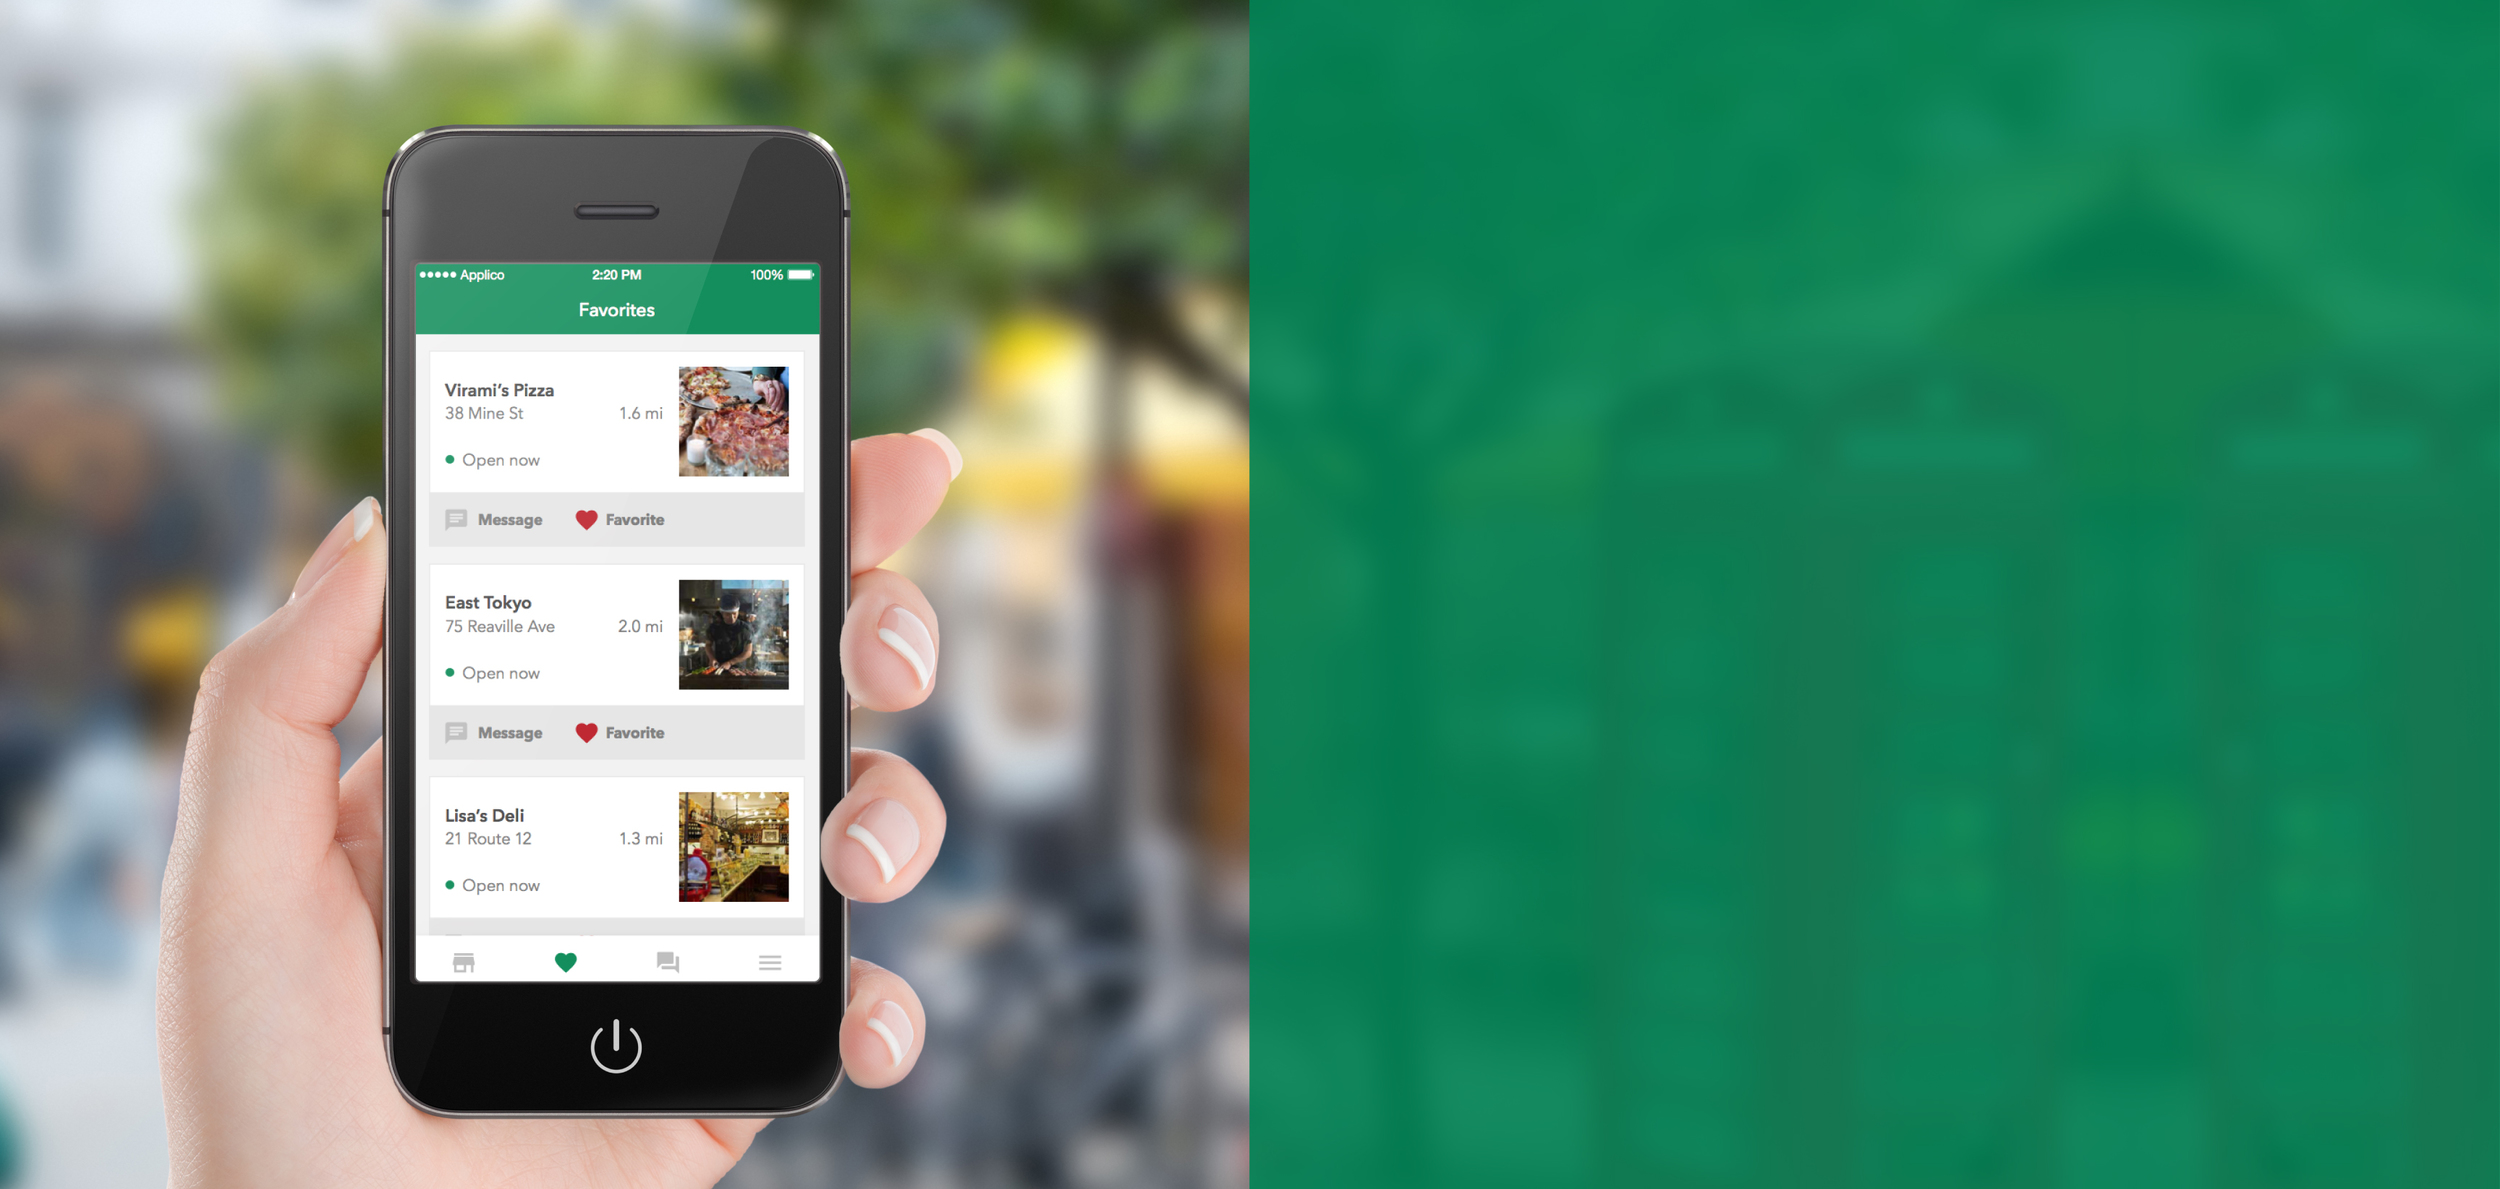 Message local businesses in your neighborhood  as effortlessly as you message friends.   Download app